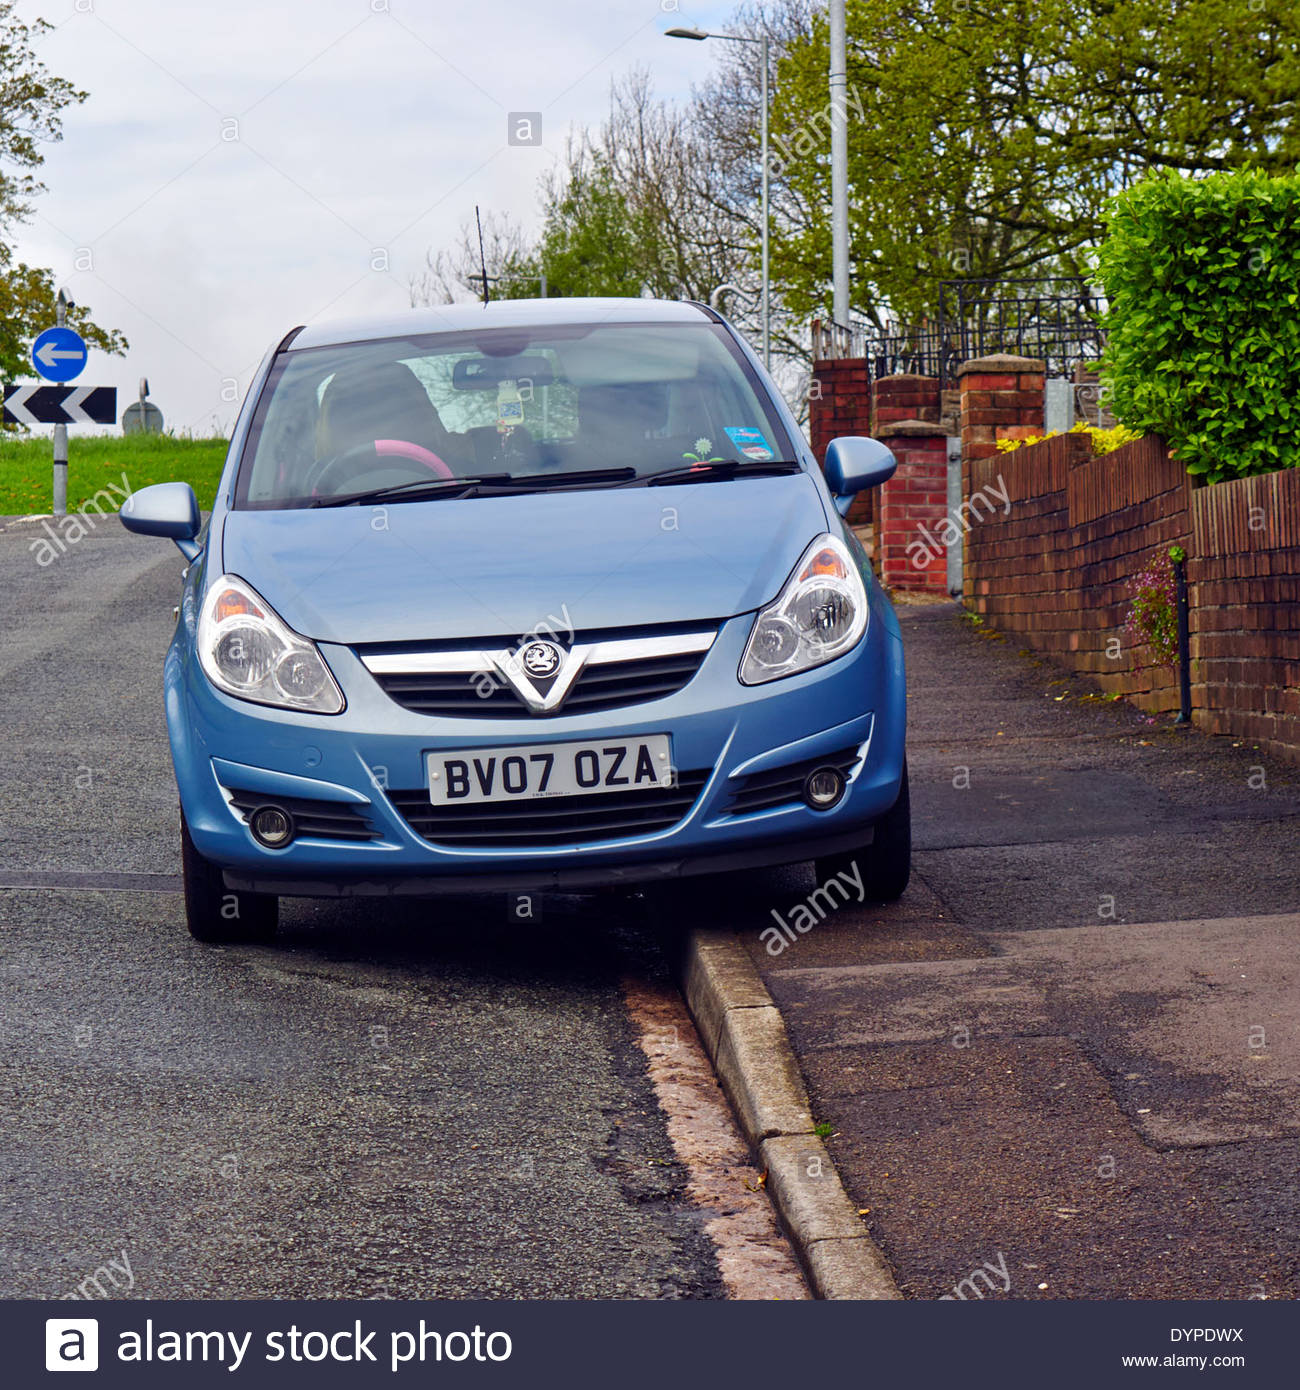 bad inconsiderate driver by parking motor vehicle on the pavement - Stock Image